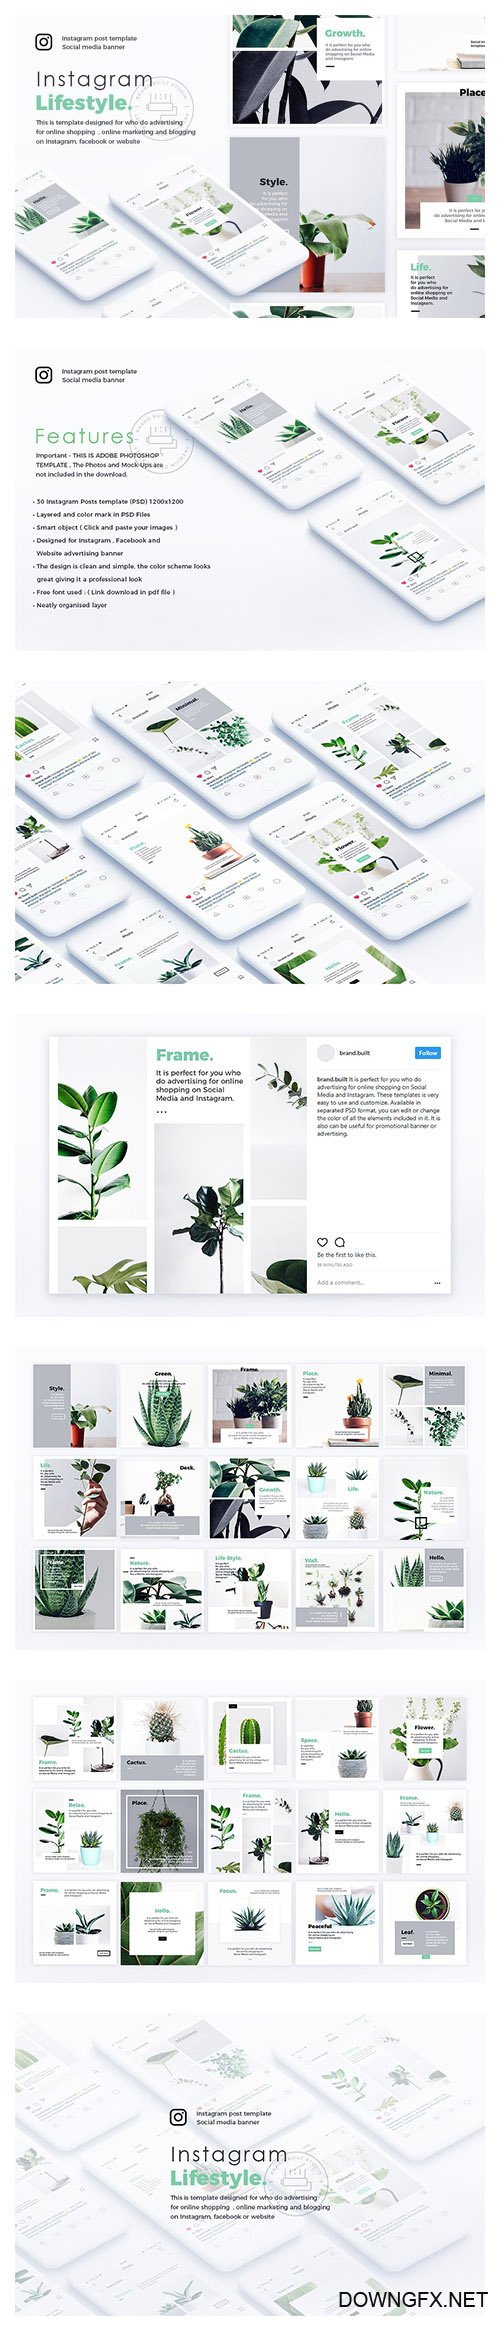 Lifestyle Instagram Posts Template - CM 1999243